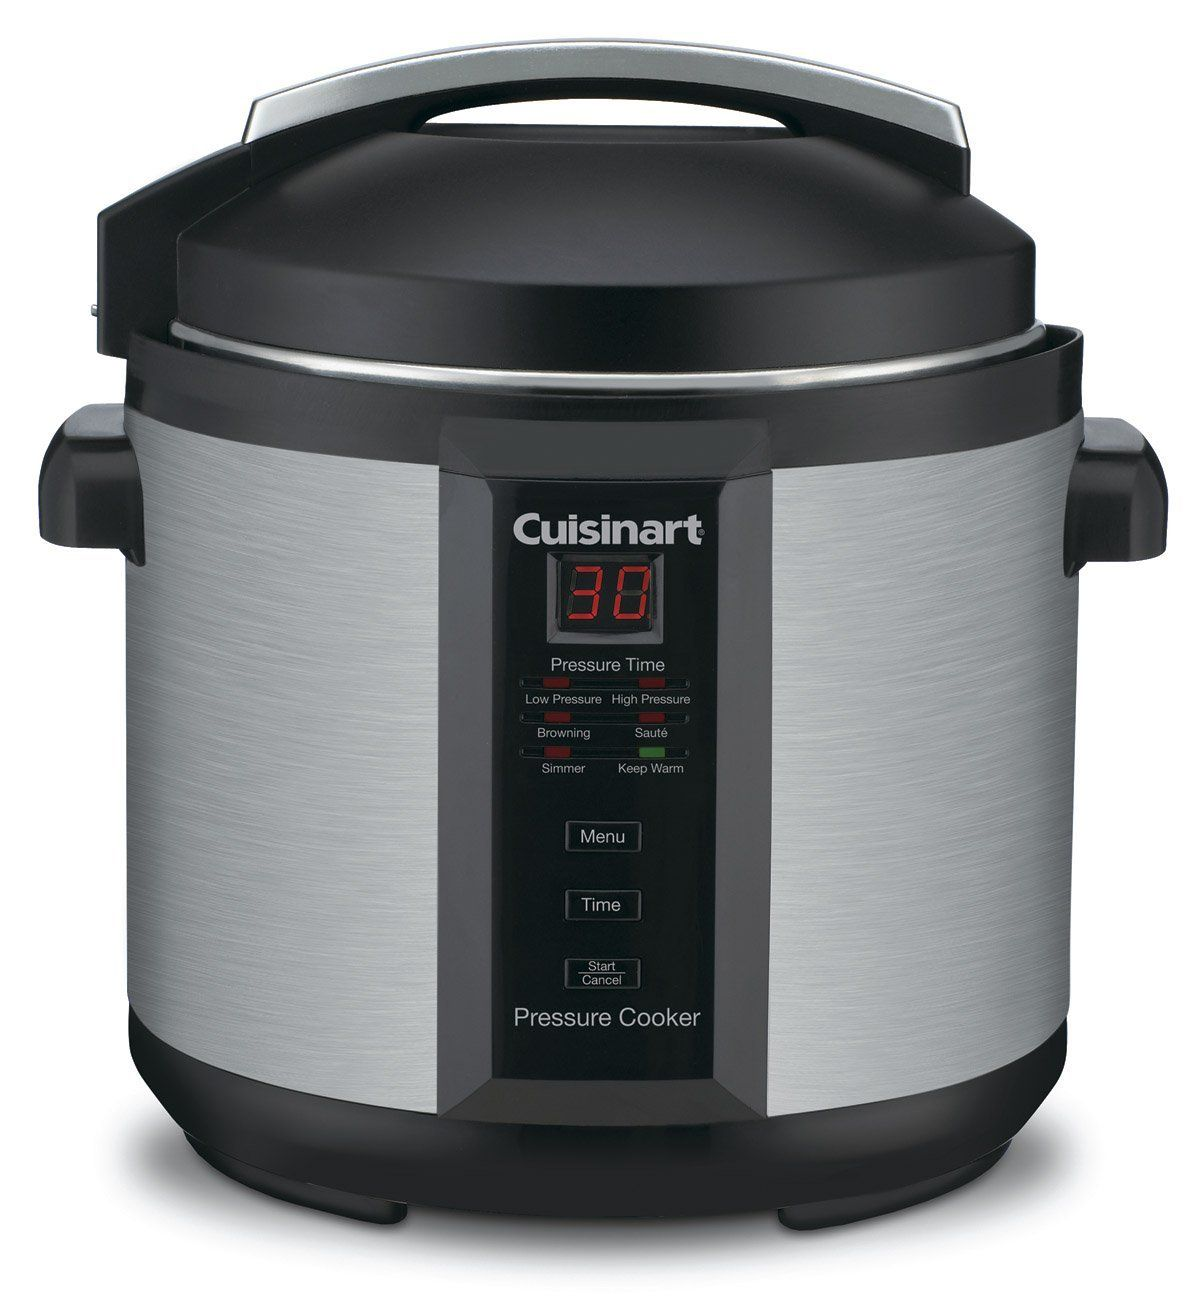 Cuisinart CPC-600 6 Quart 1000 Watt Electric Pressure Cooker (Stainless Steel) >>> You can find out more details at the link of the image.